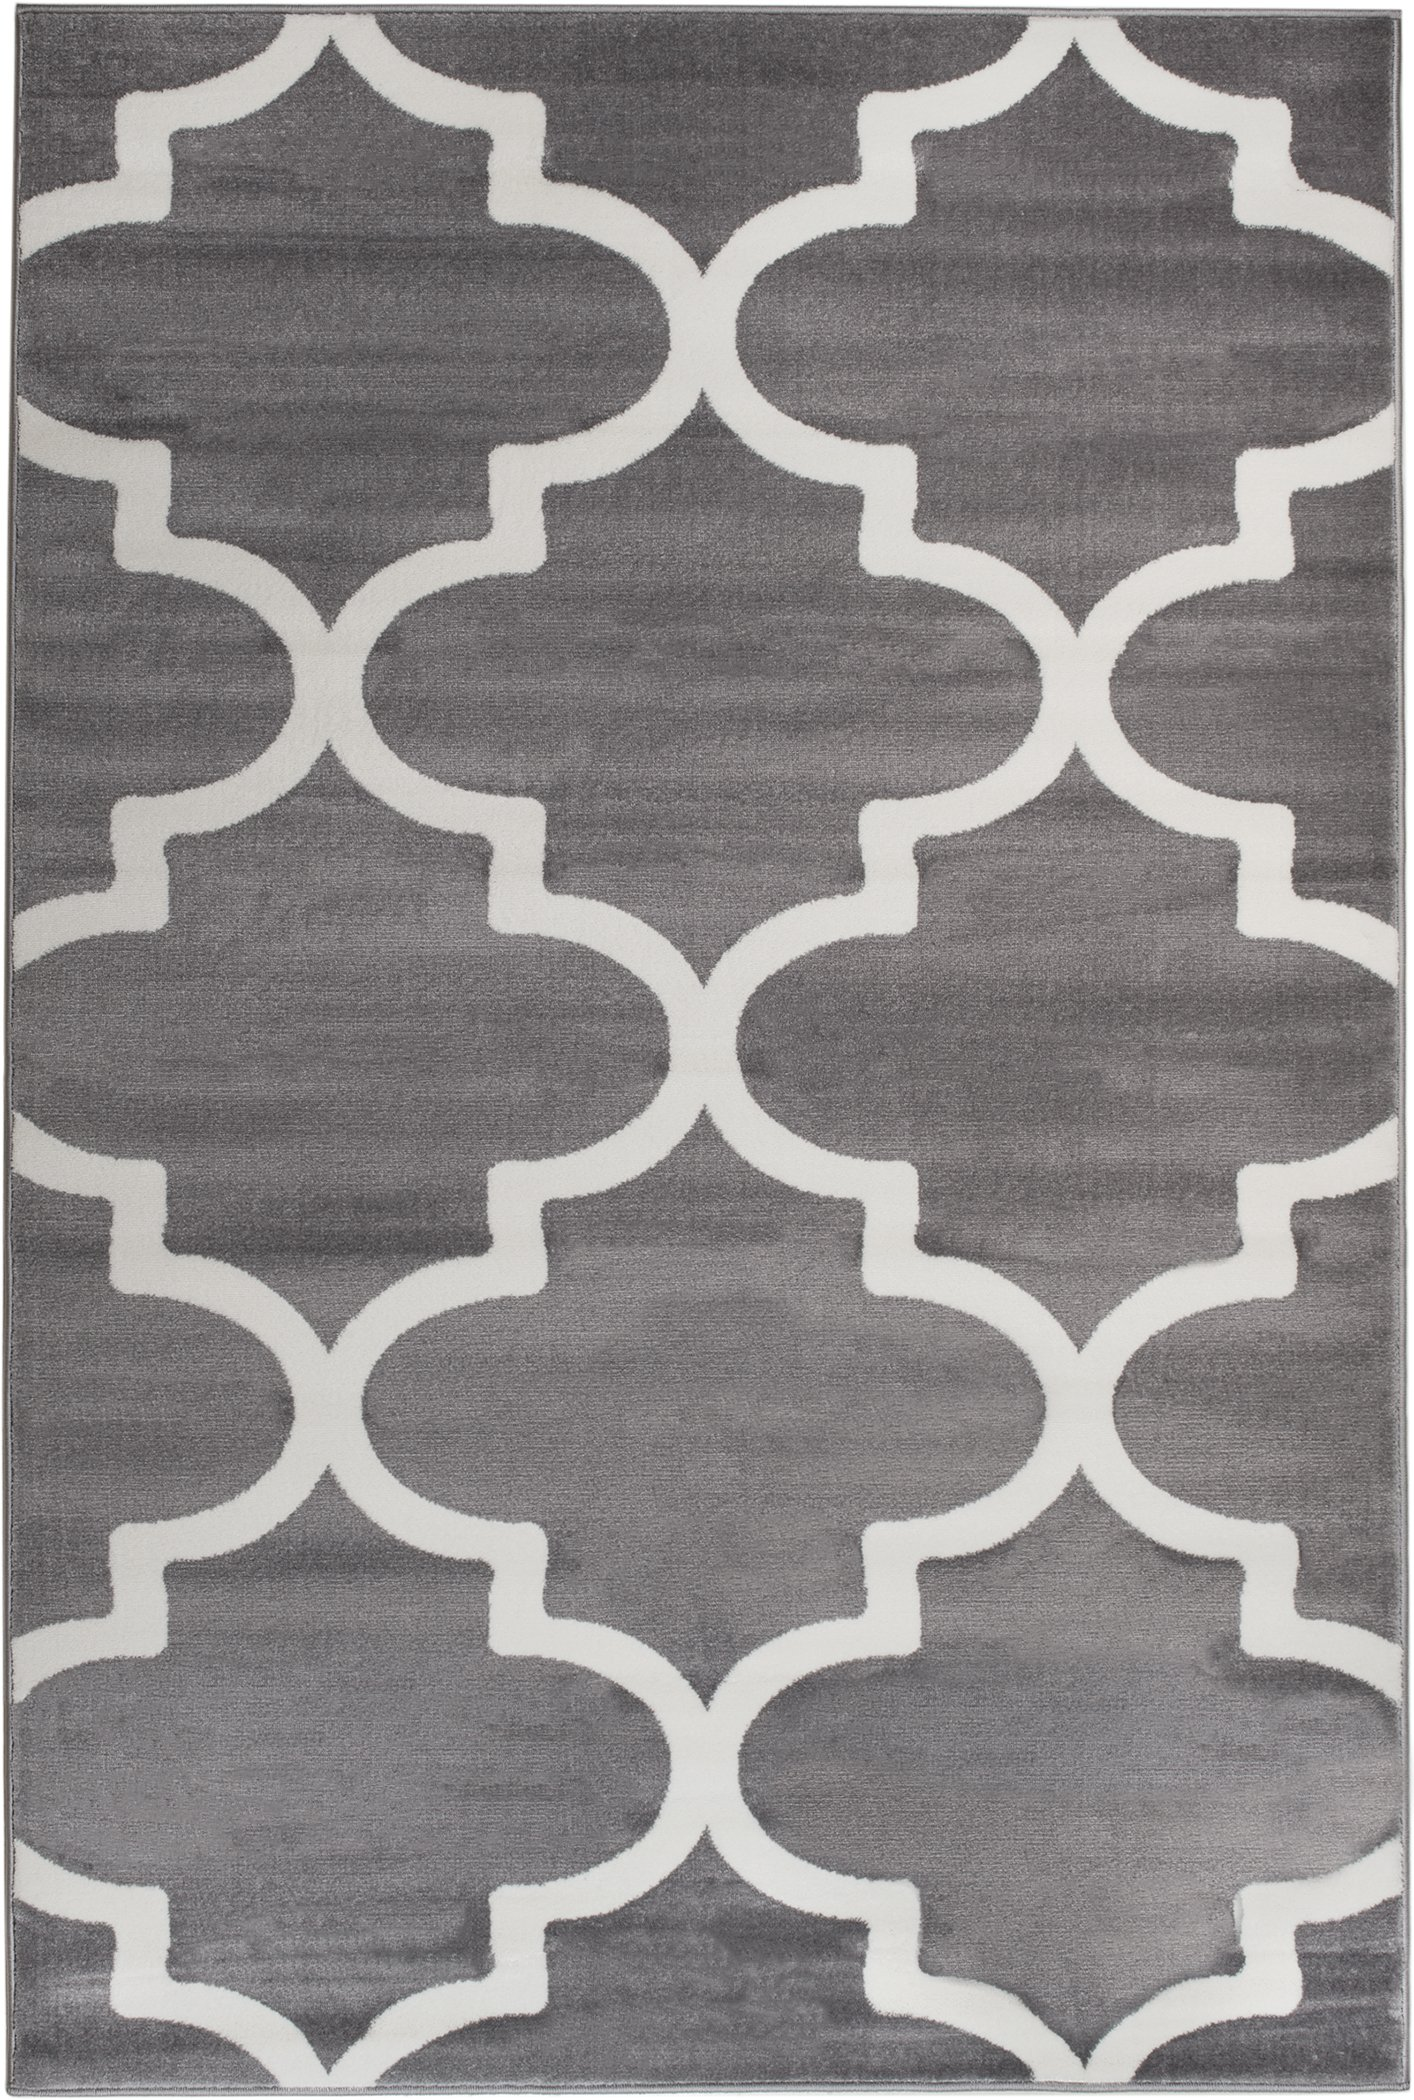 Summit UY-IQR5-MN5T 50 Grey Trellis Area Rug Modern Abstract Many Sizes Available , DOOR MAT 22 inch x 35 inch